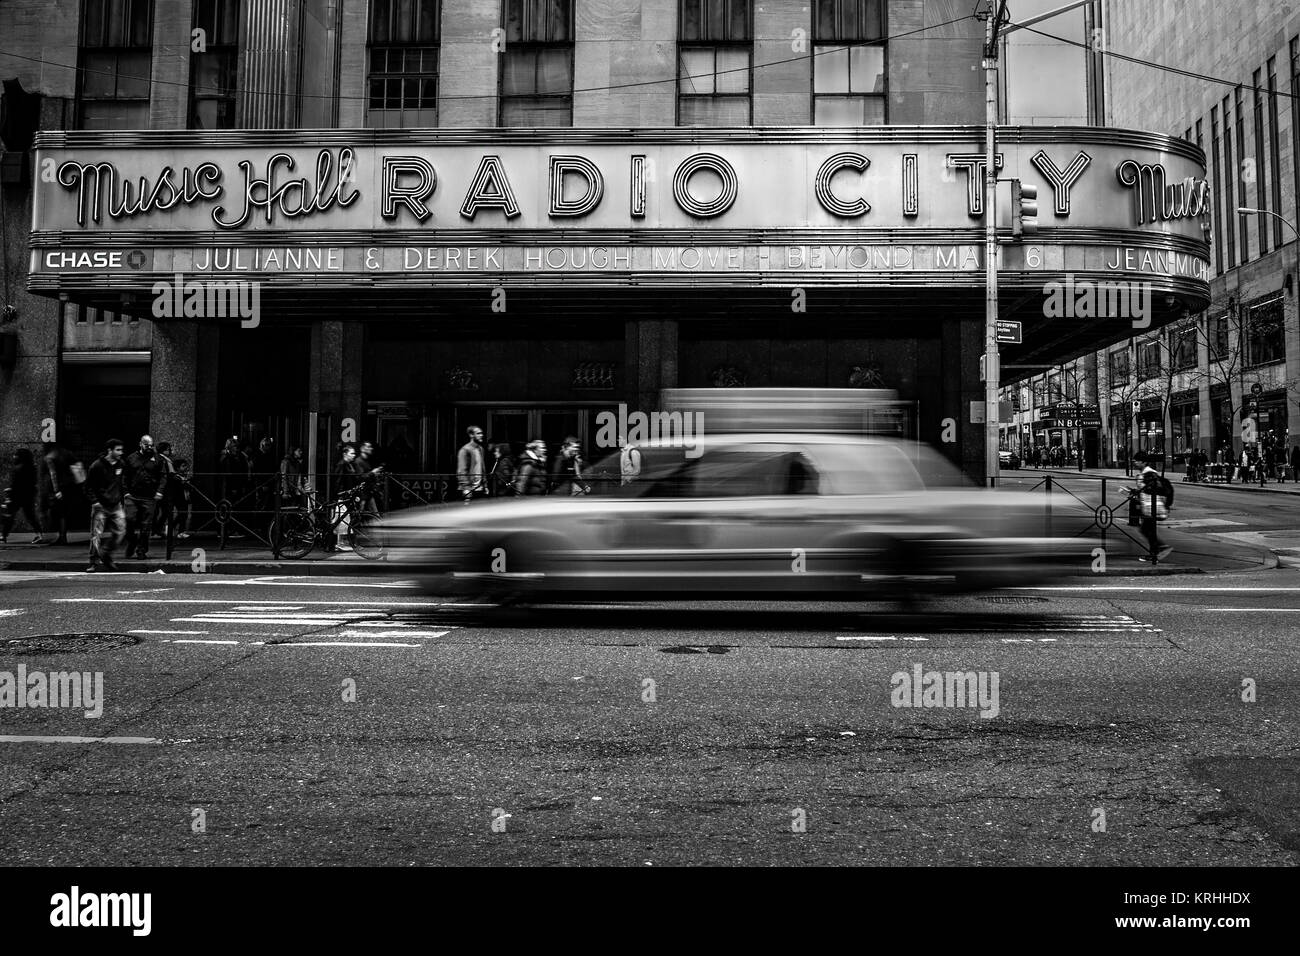 New York City Taxi Passes By Radio City Music Hall in New York City, America - Stock Image